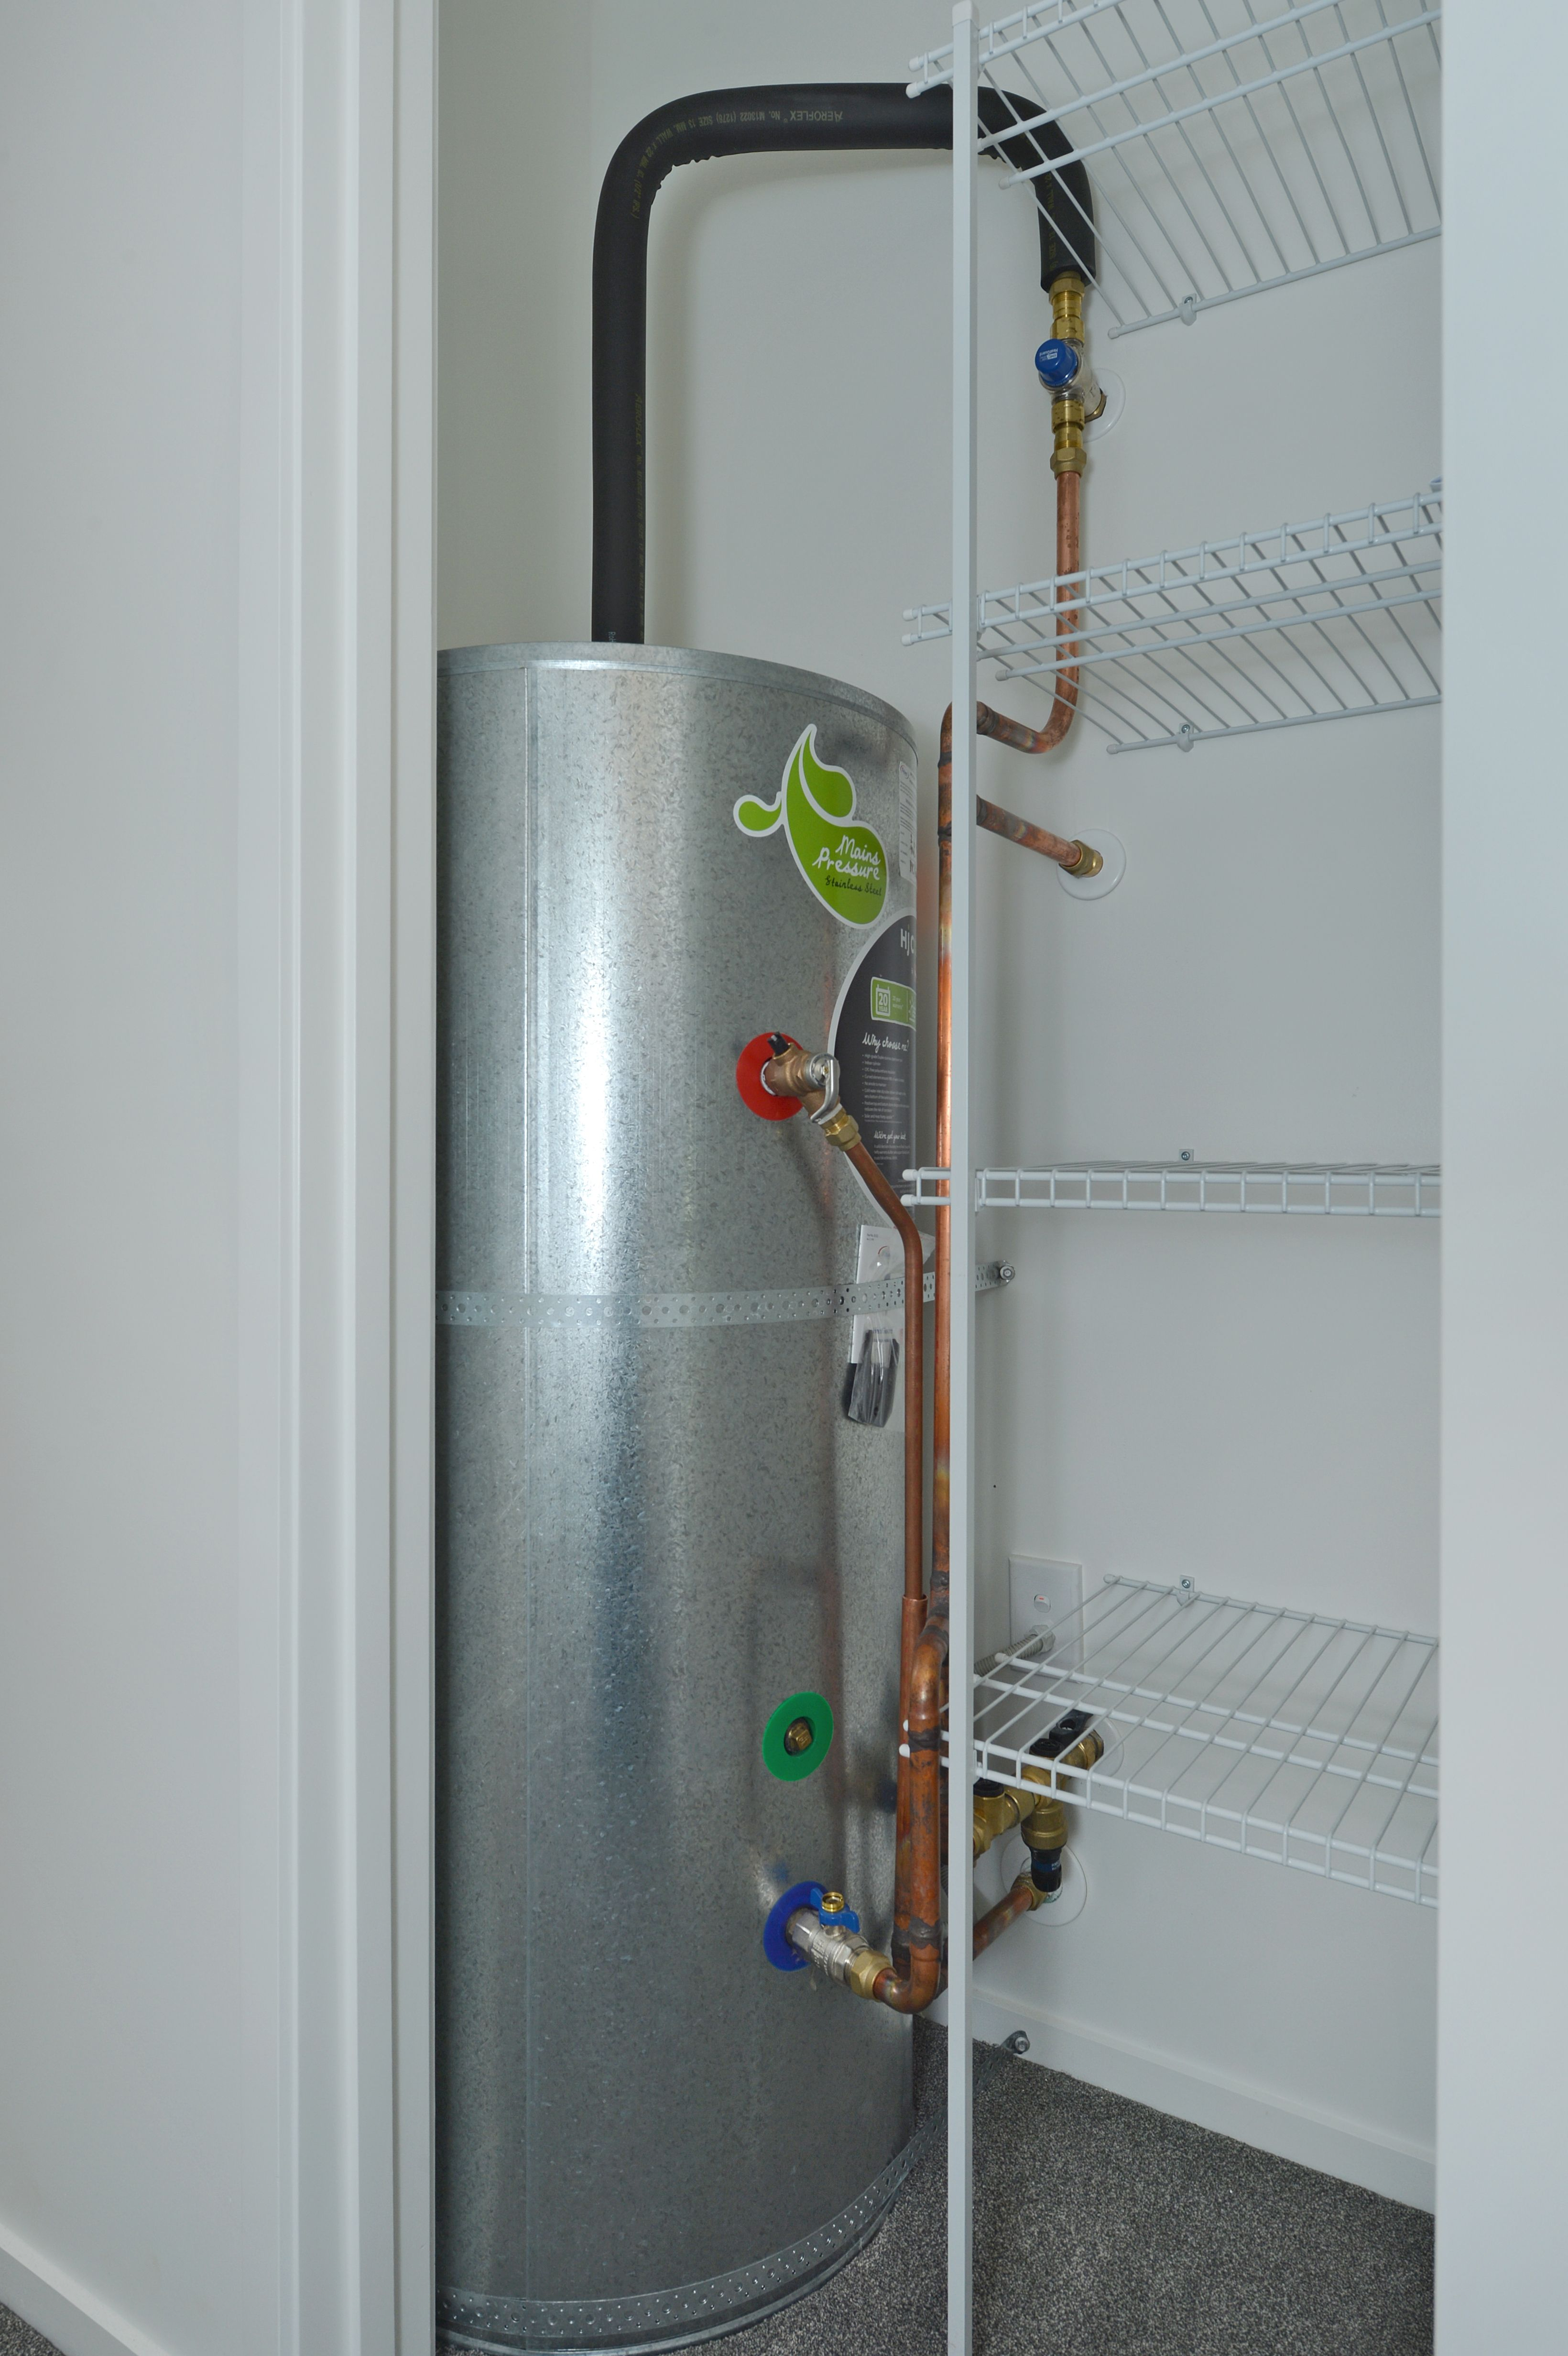 HJ Cooper Stainless Steel Mains Pressure Hot Water Cylinder